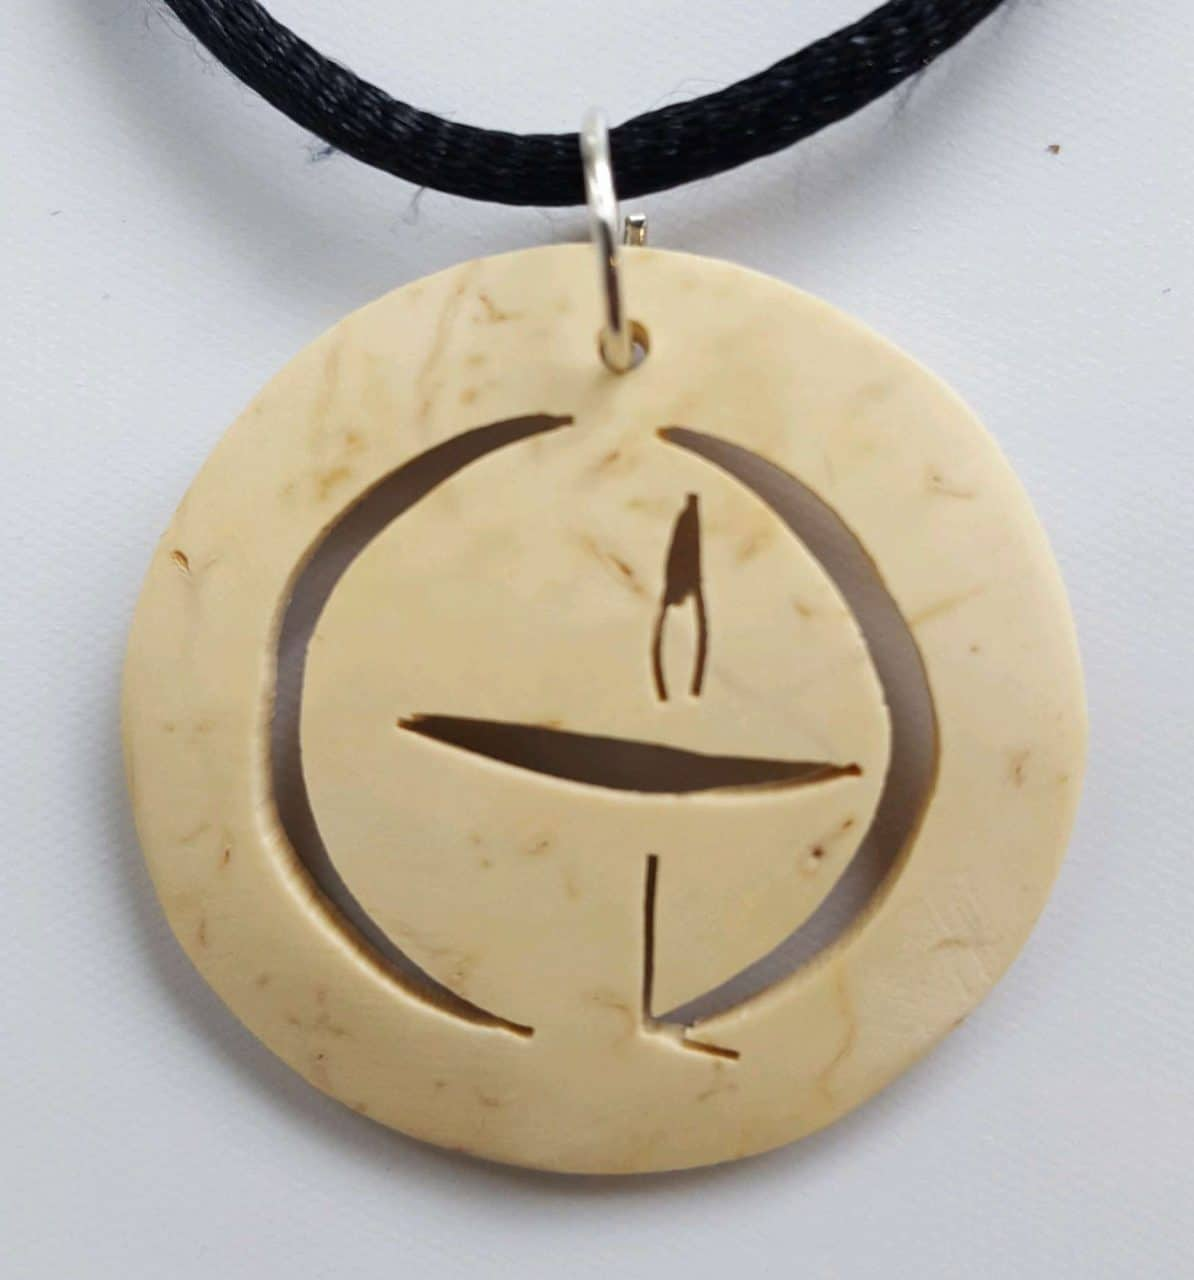 Unitarian Universalist Chalice Coco Spirit Hand-Carved Coconut Shell Necklace